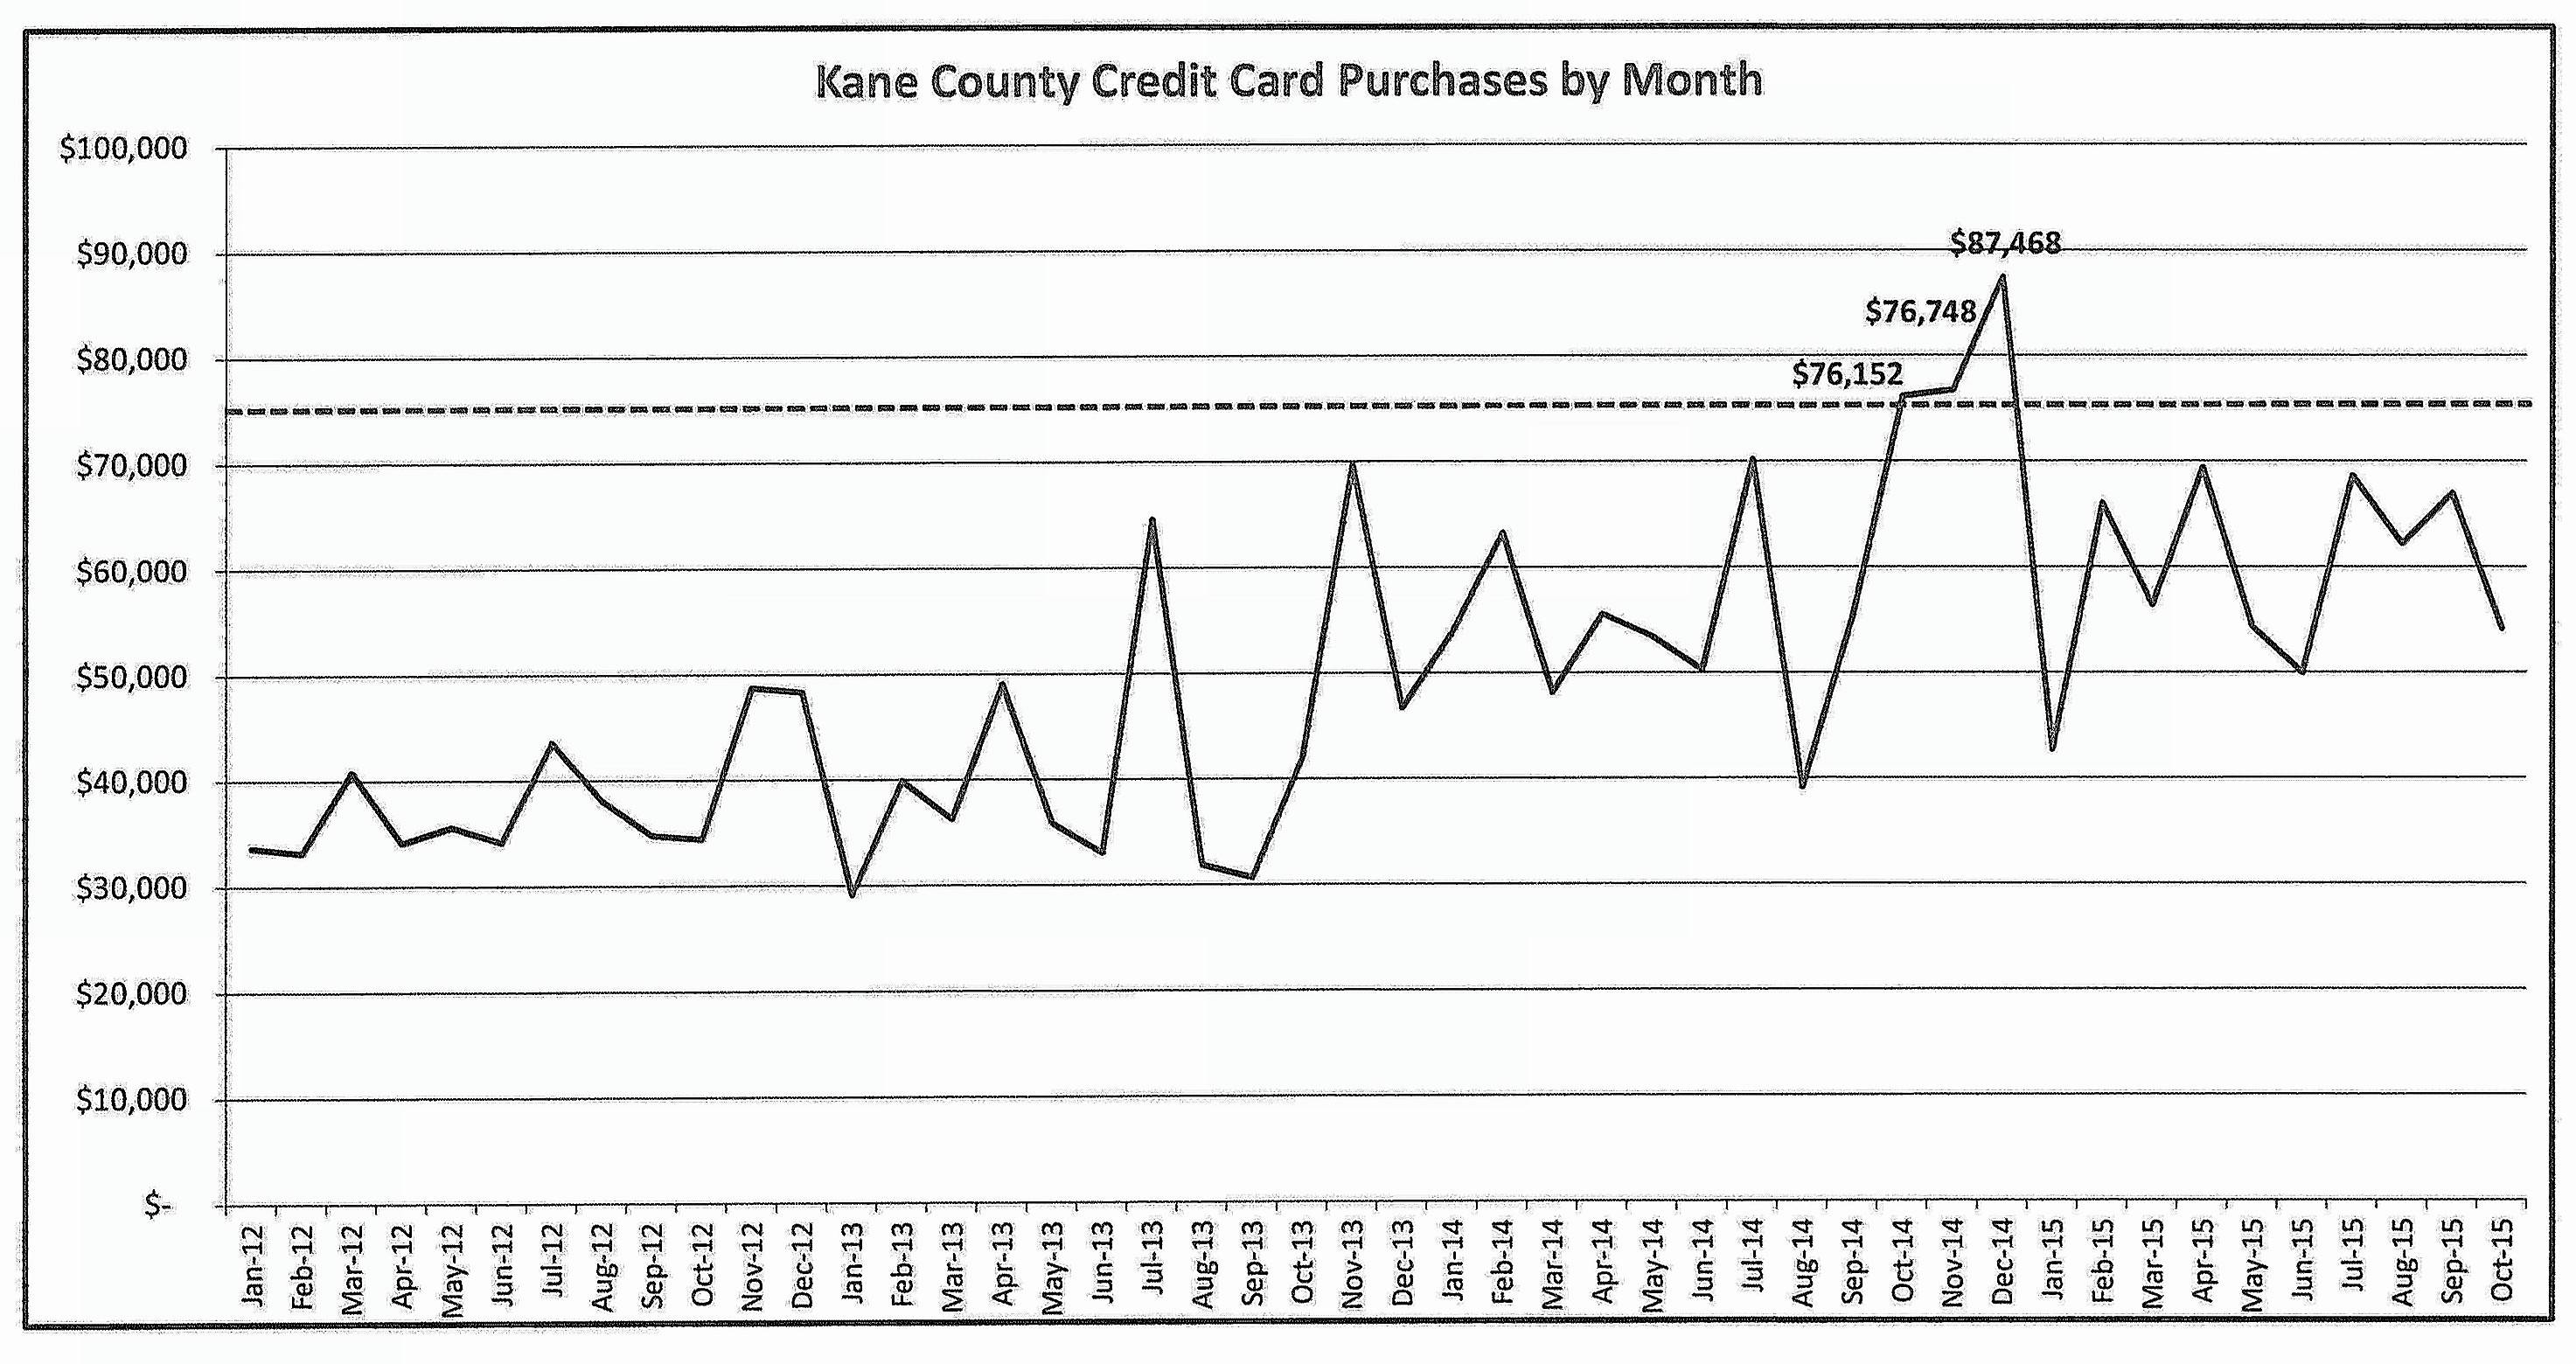 Usage of Kane County's credit cards has been trending upward the past few years. Recent events have shown the cards can be a way to circumvent the purchasing approval process at the county. Now county board members are moving to dramatically reduce the number of cards and how much they can be used.